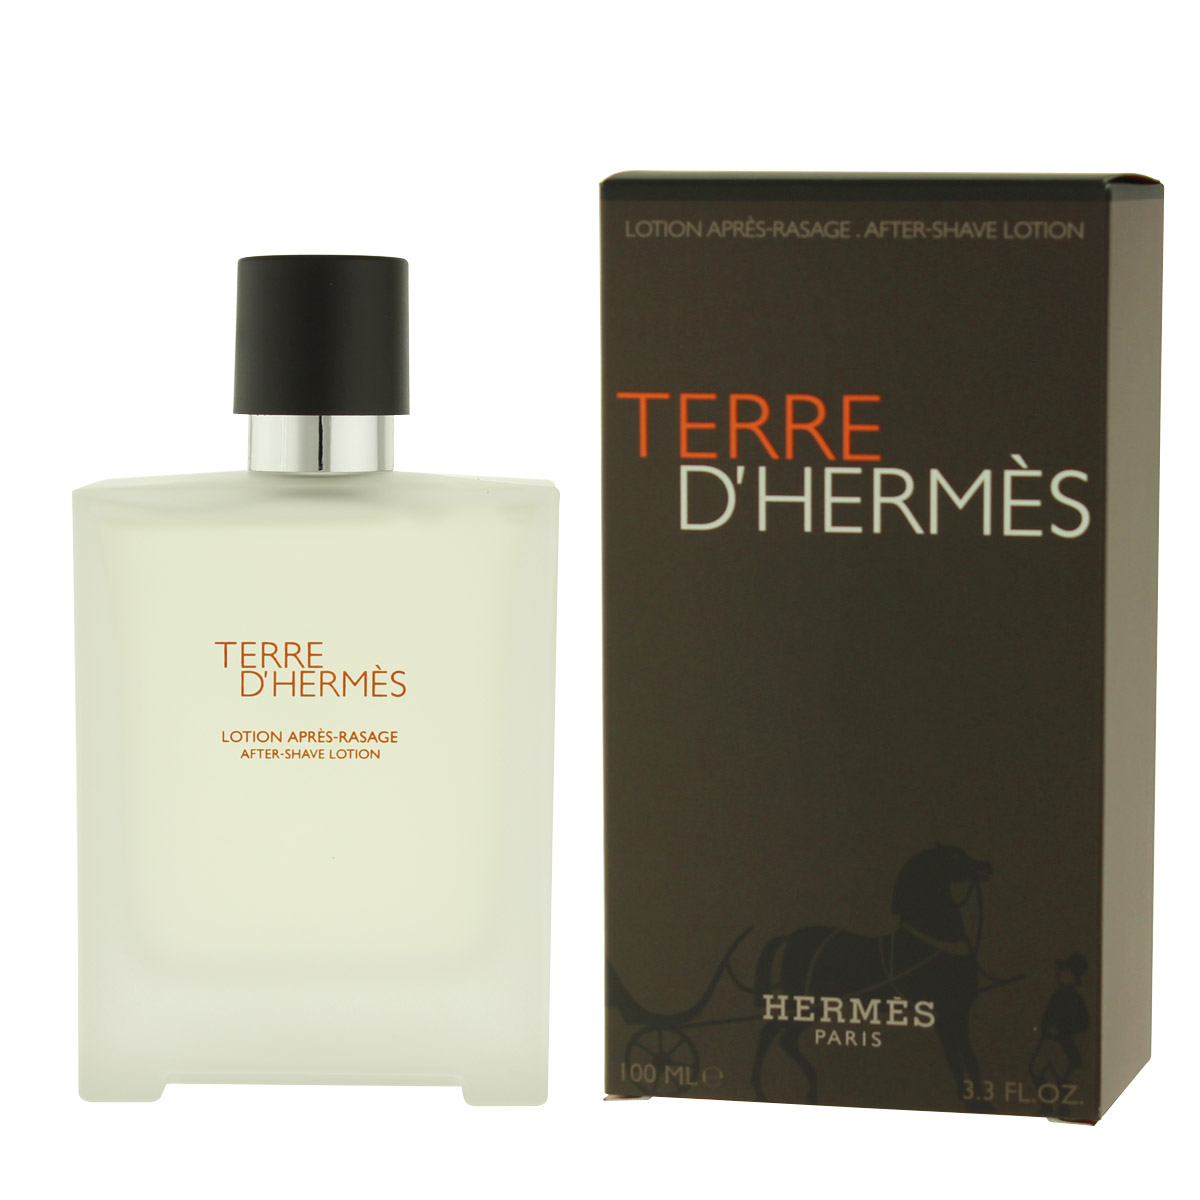 Hermès Terre D'Hermès AS 100 ml M